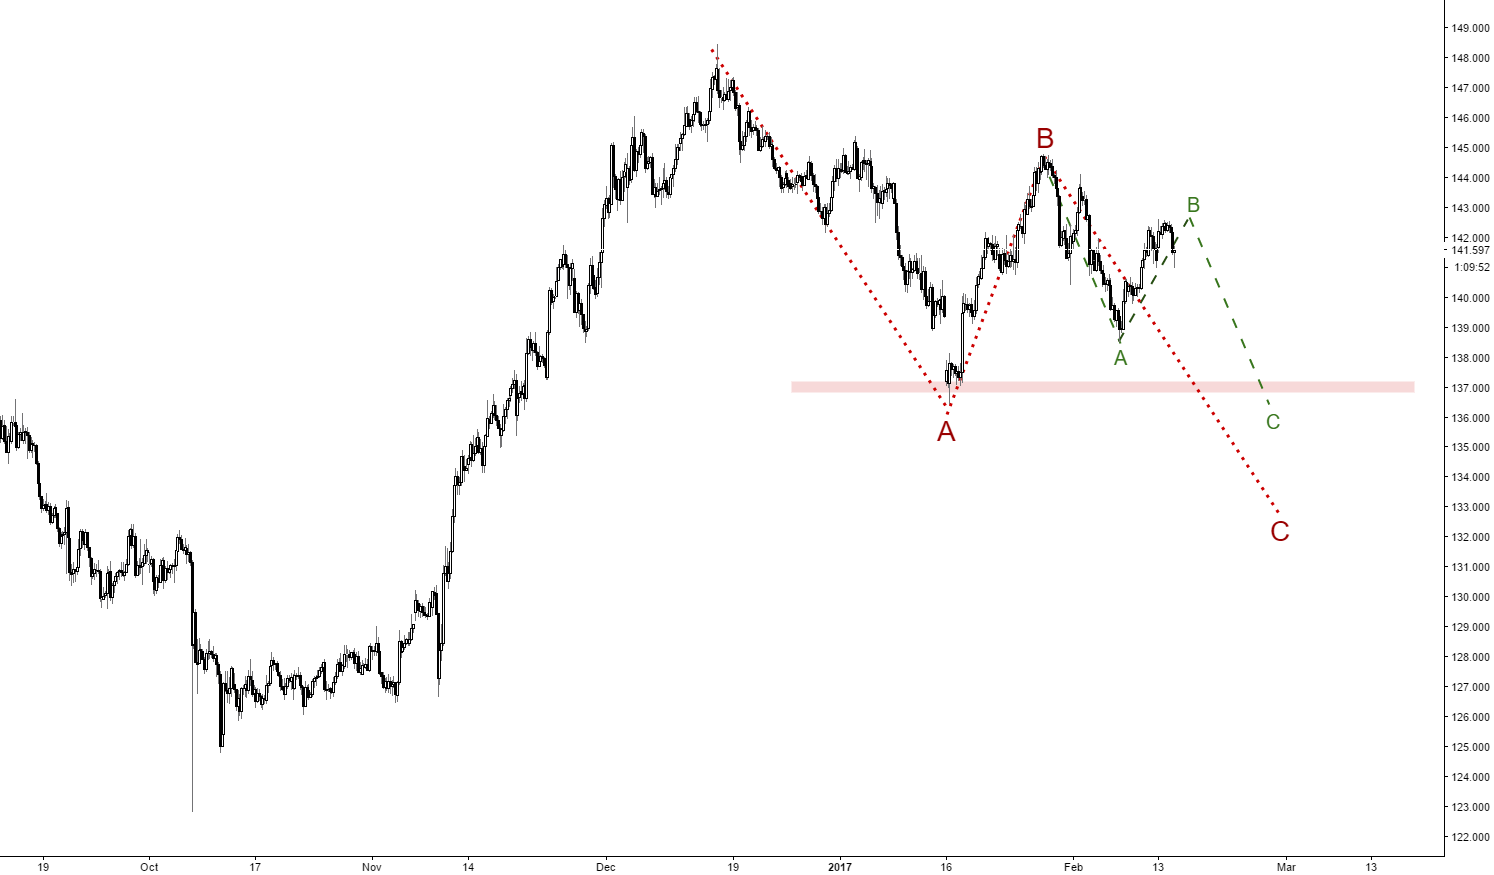 GBPJPY going down soon?